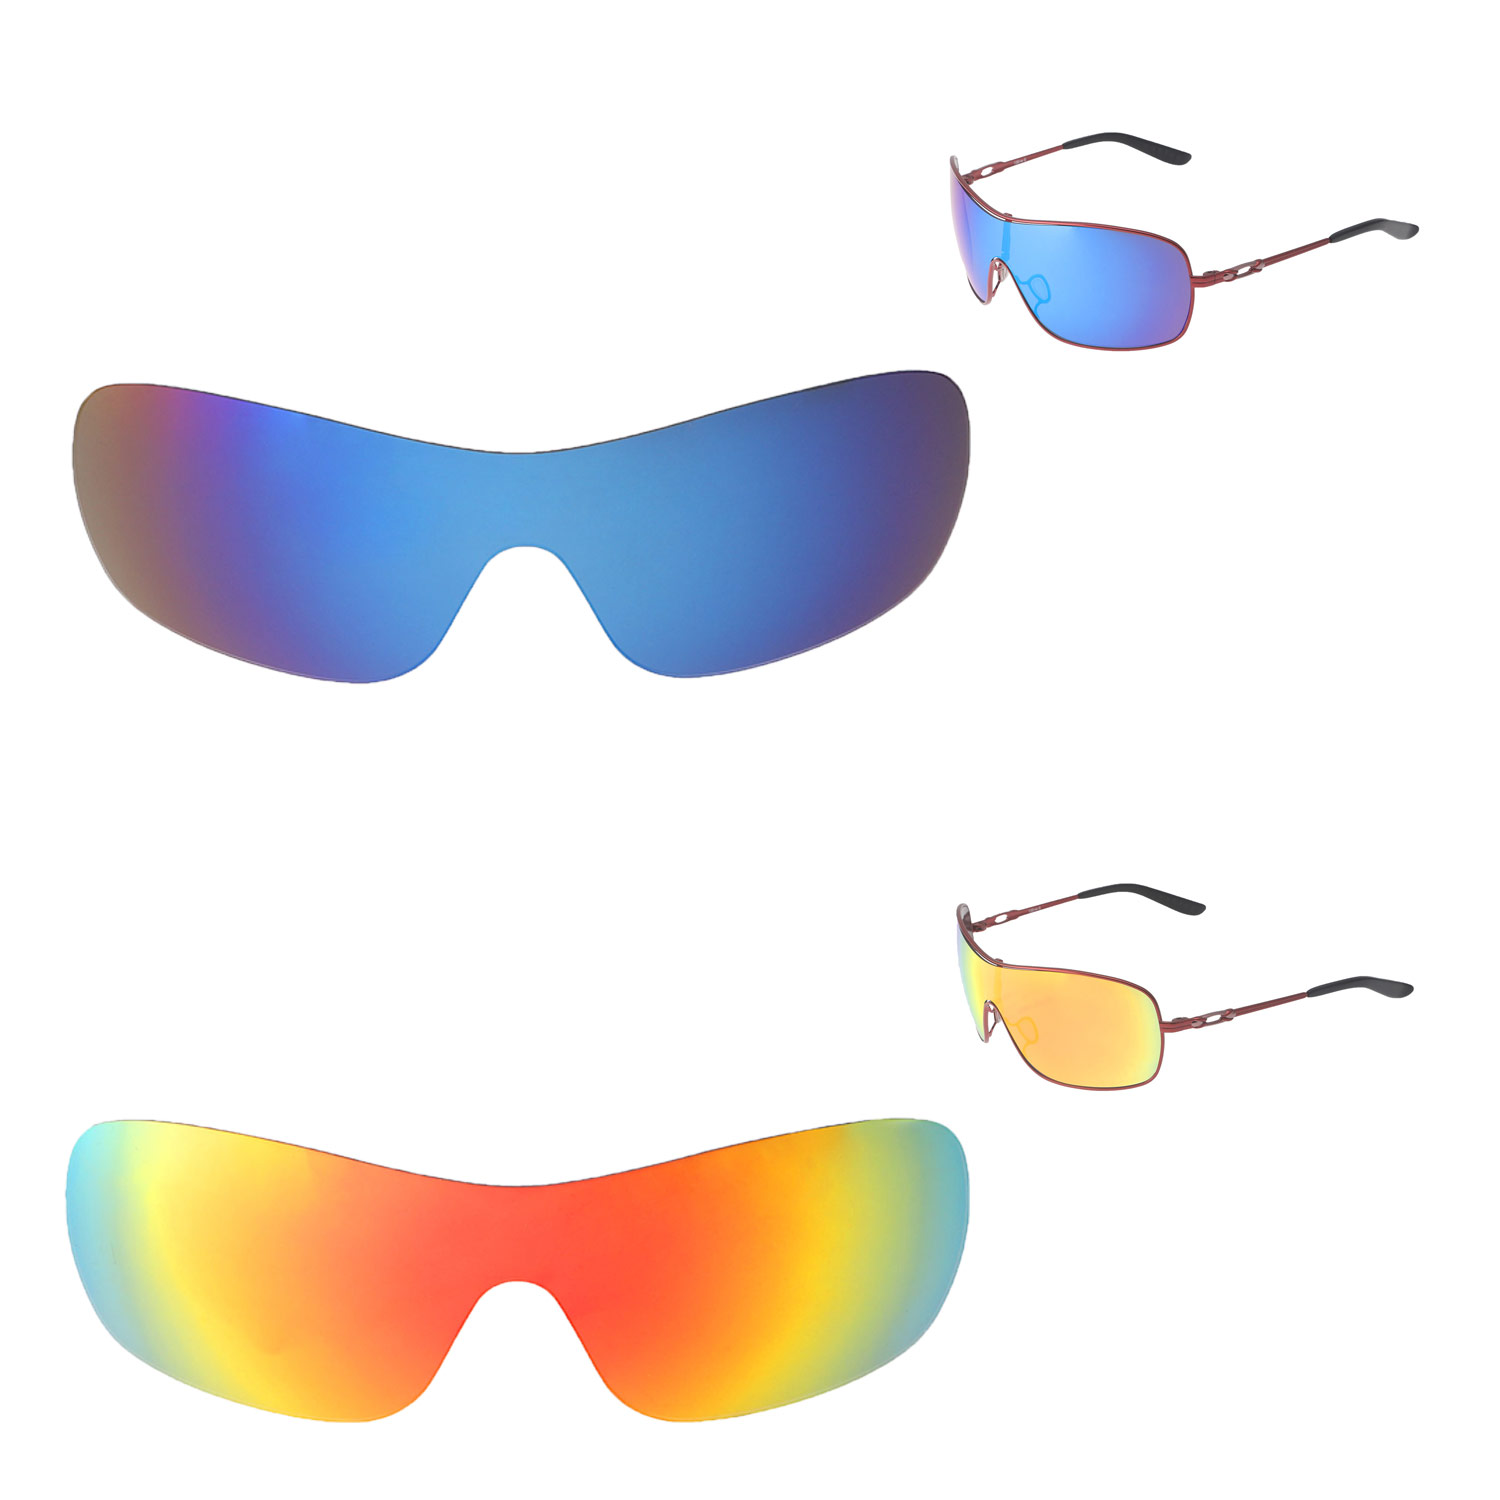 641b4c4f67 Details about Walleva Fire Red + Ice Blue Polarized Replacement Lenses For  Oakley Distress